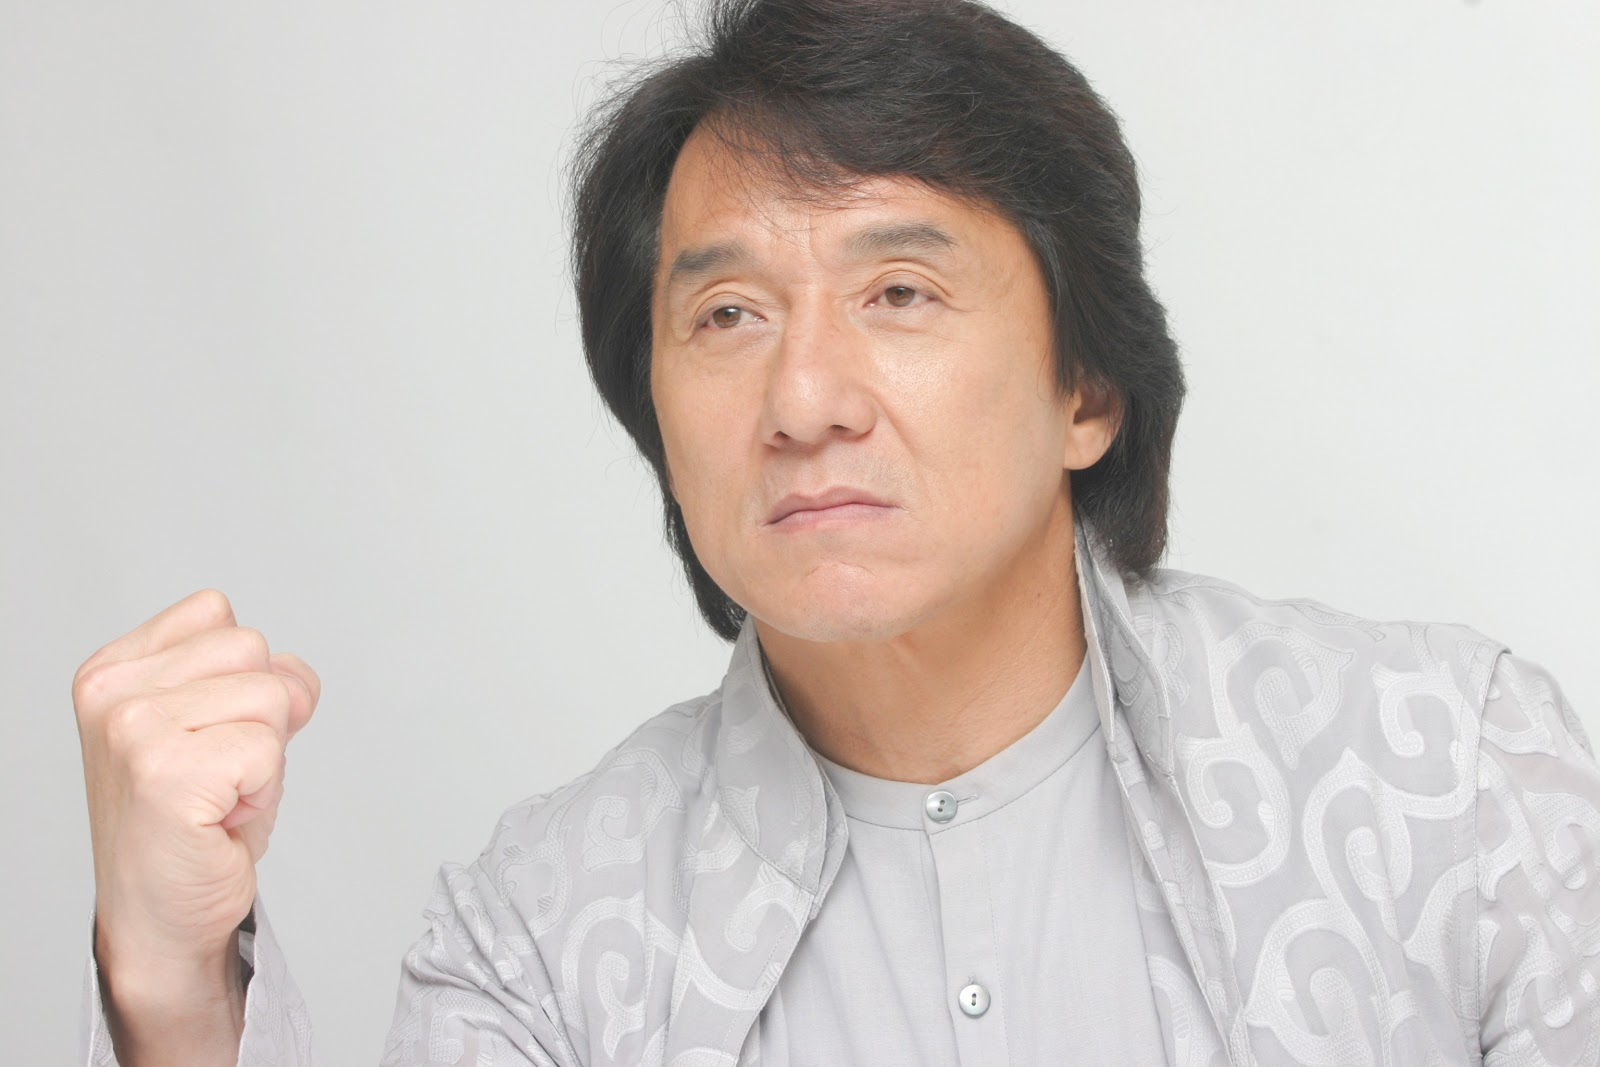 Jackie chan hd wallpapers high definition free background - Jackie chan wallpaper download ...